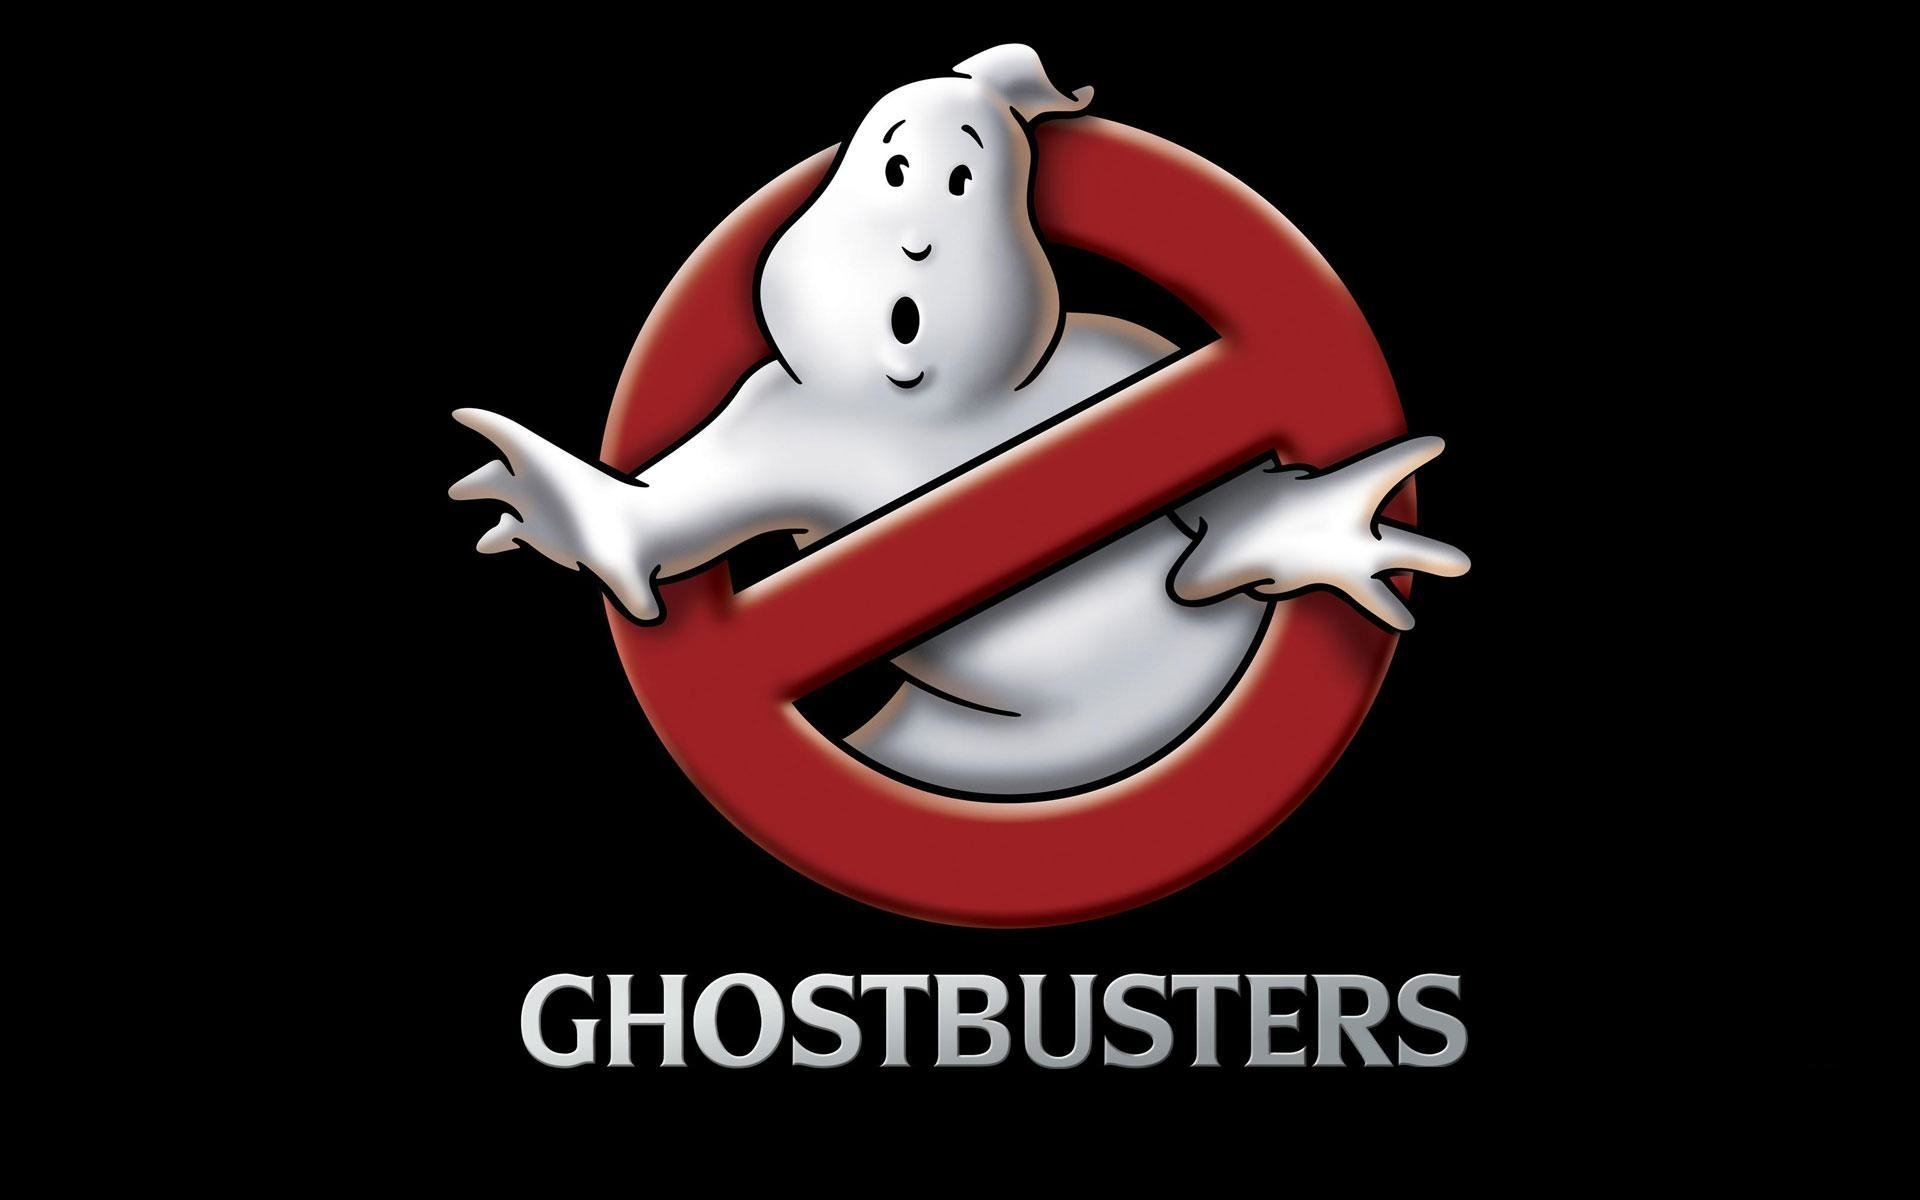 40 Ghostbusters HD Wallpapers | Backgrounds - Wallpaper Abyss